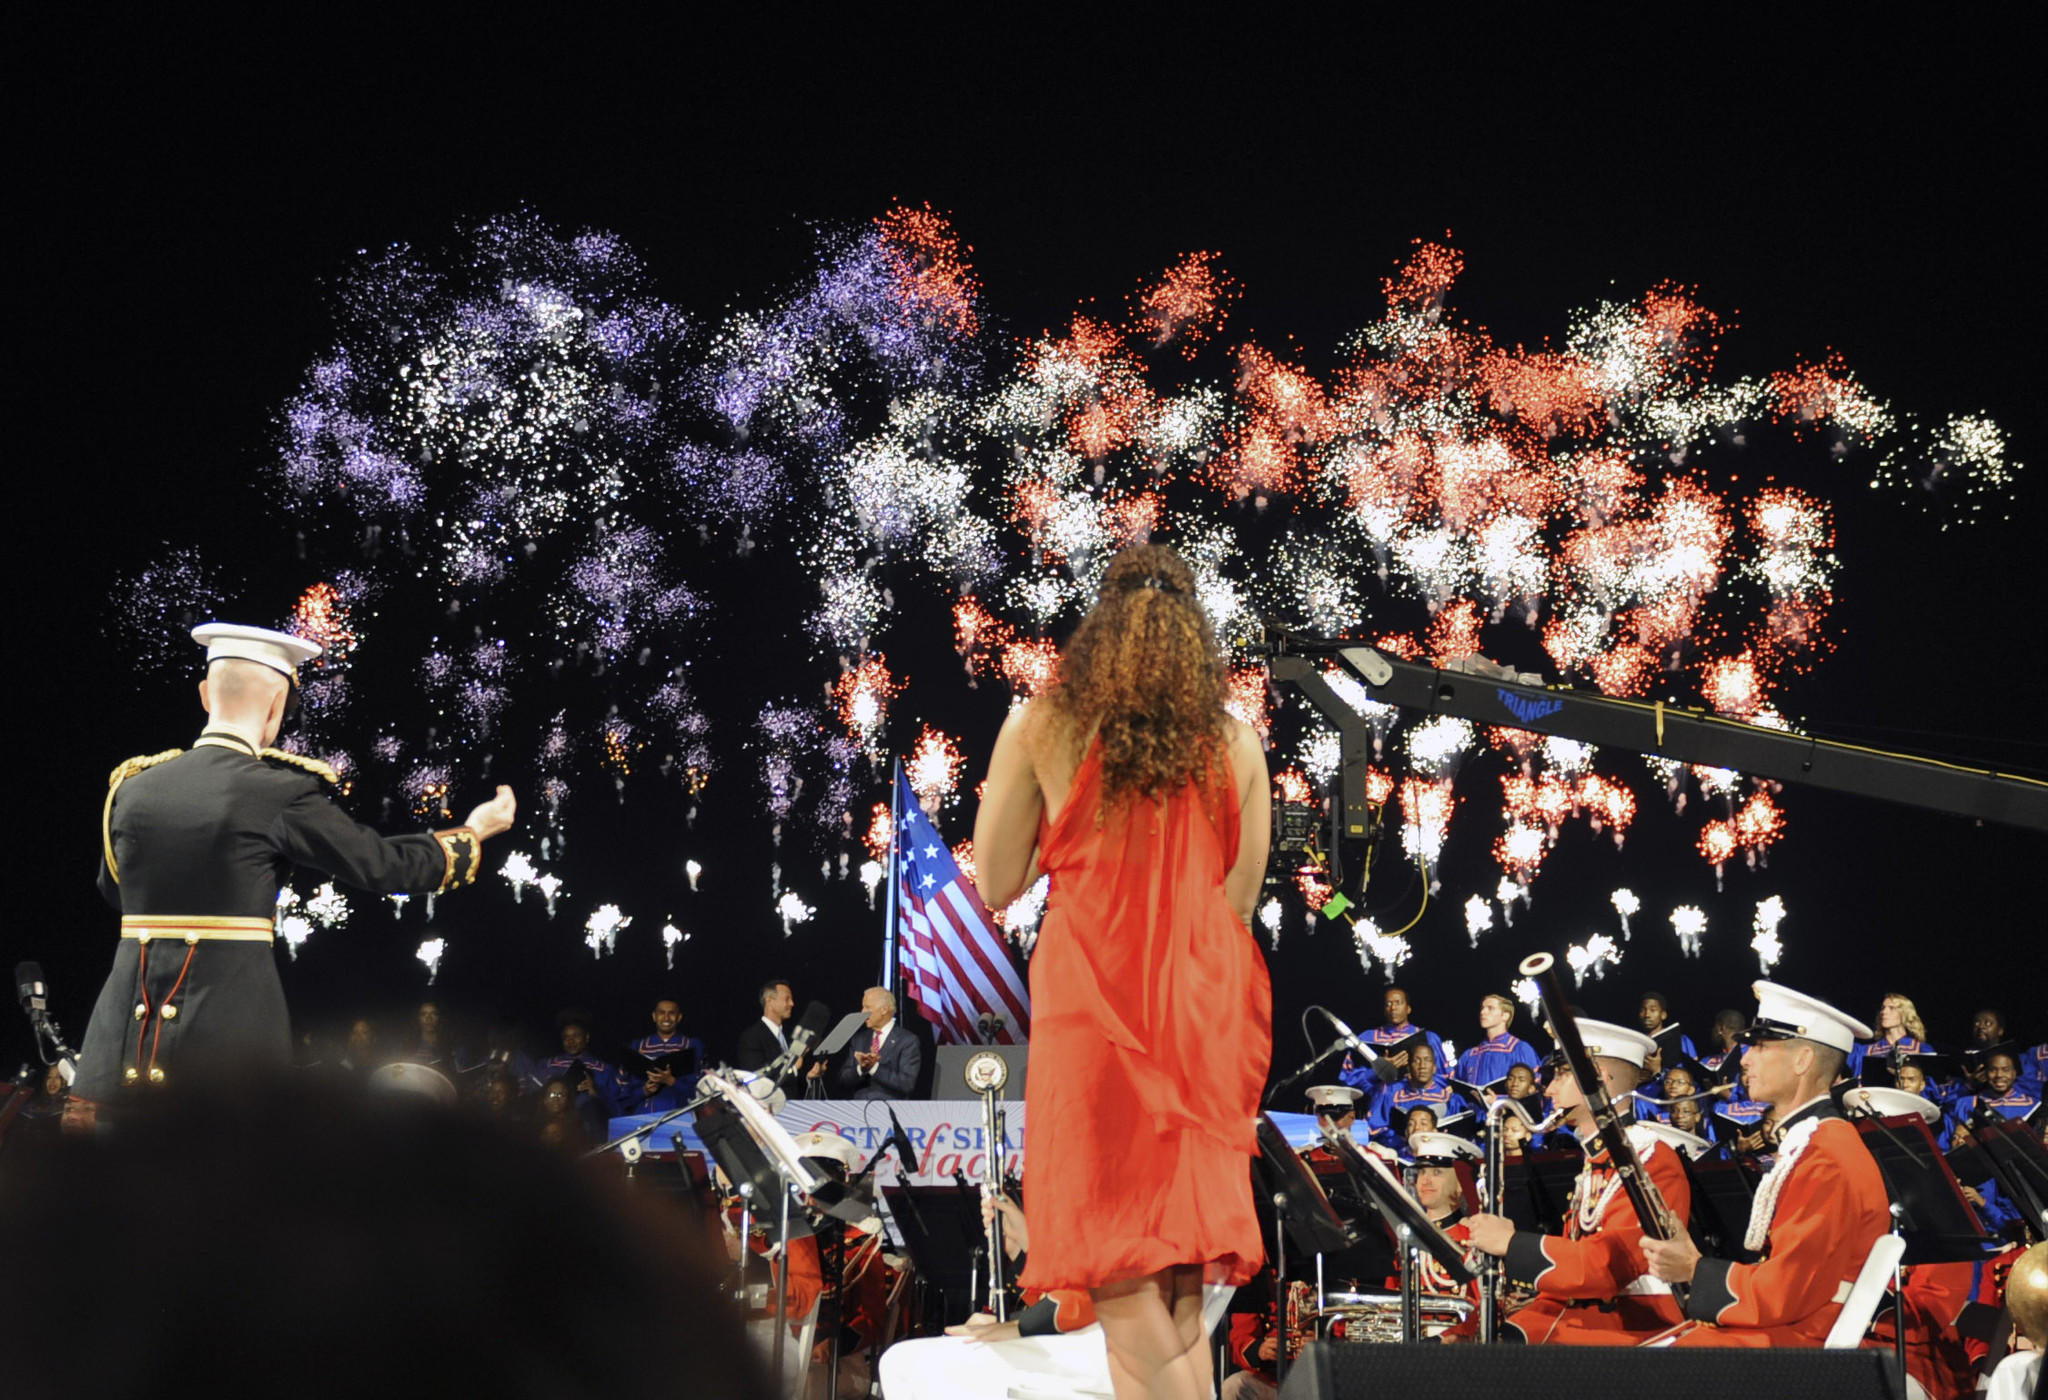 """A moment from 'Great Performances' live production on PBS of Baltimore's """"Star-Spangled Spectacular"""" concert."""